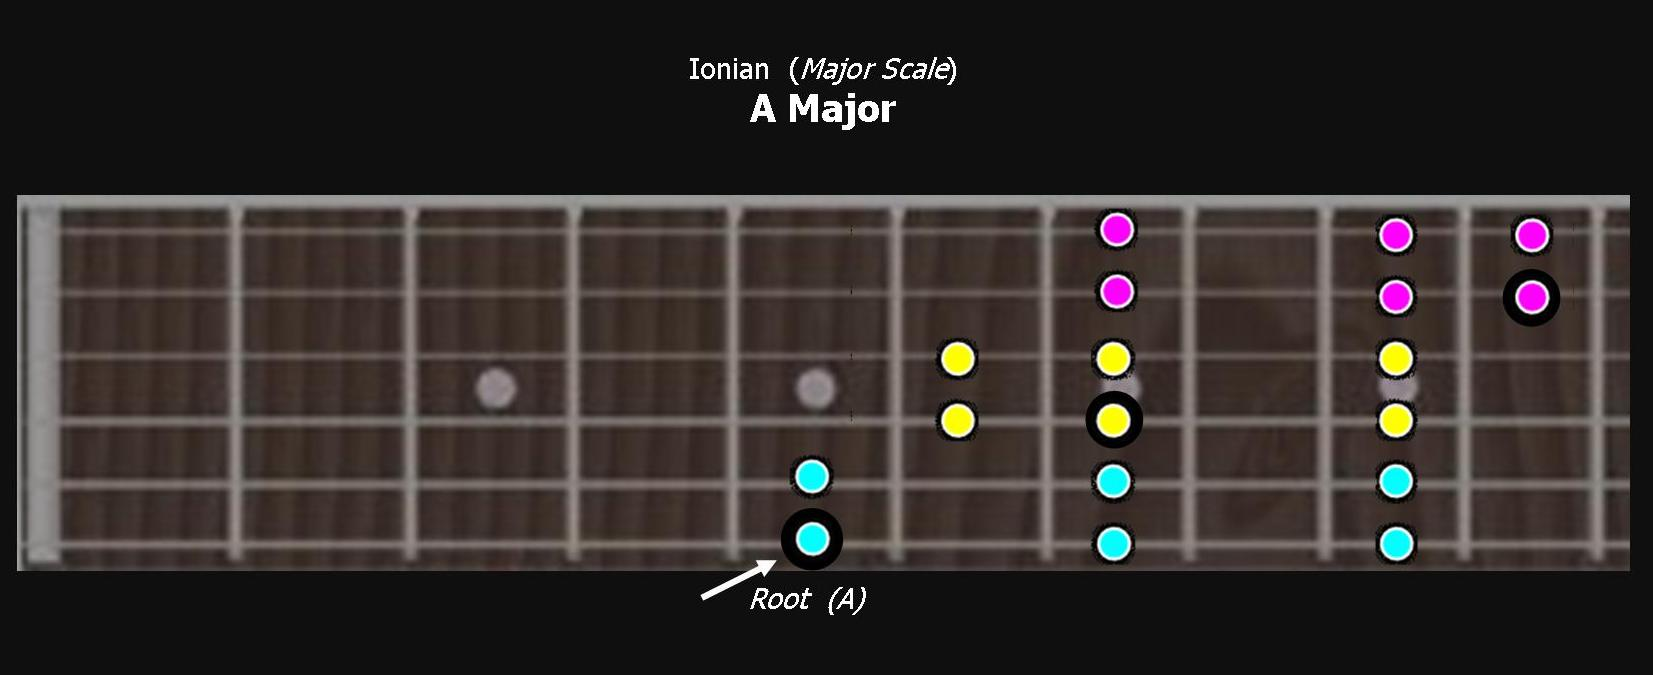 Ionian A Major Scale